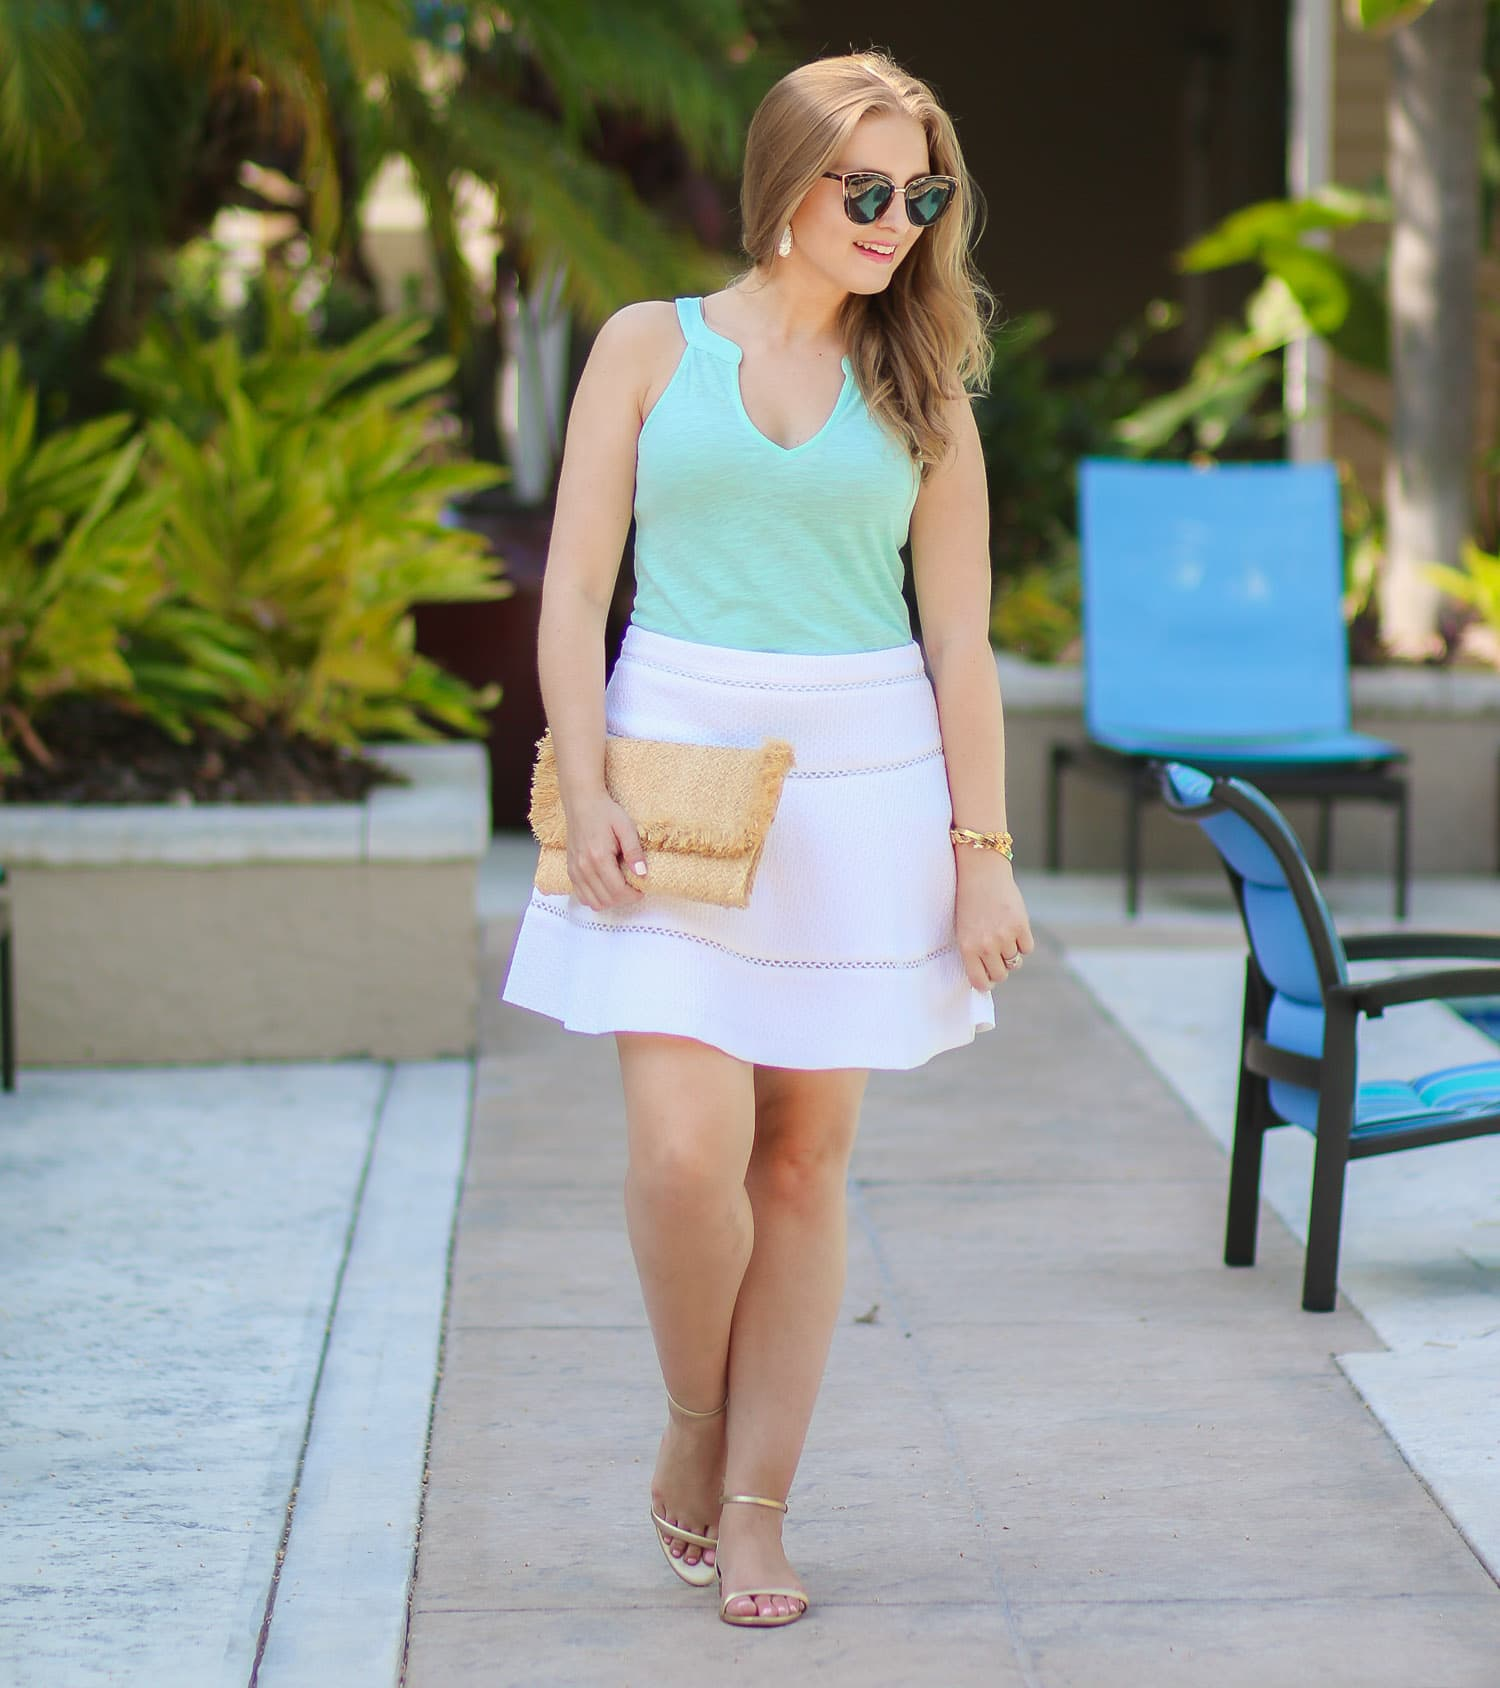 What to buy at the Lilly Pulitzer After Party Sale   Lilly Pulitzer Arya top in aqua, Lilly Pulitzer gold pineapple sandals, Banana Republic white fit and flare skater skirt, Hat Attack raffia clutch with fringe, Baublebar gold pineaple bracelet, Kendra Scott Elle earrings, Quay My Girl tortoiseshell cat eye sunglasses   Outfit idea by style blogger Ashley Brooke Nicholas